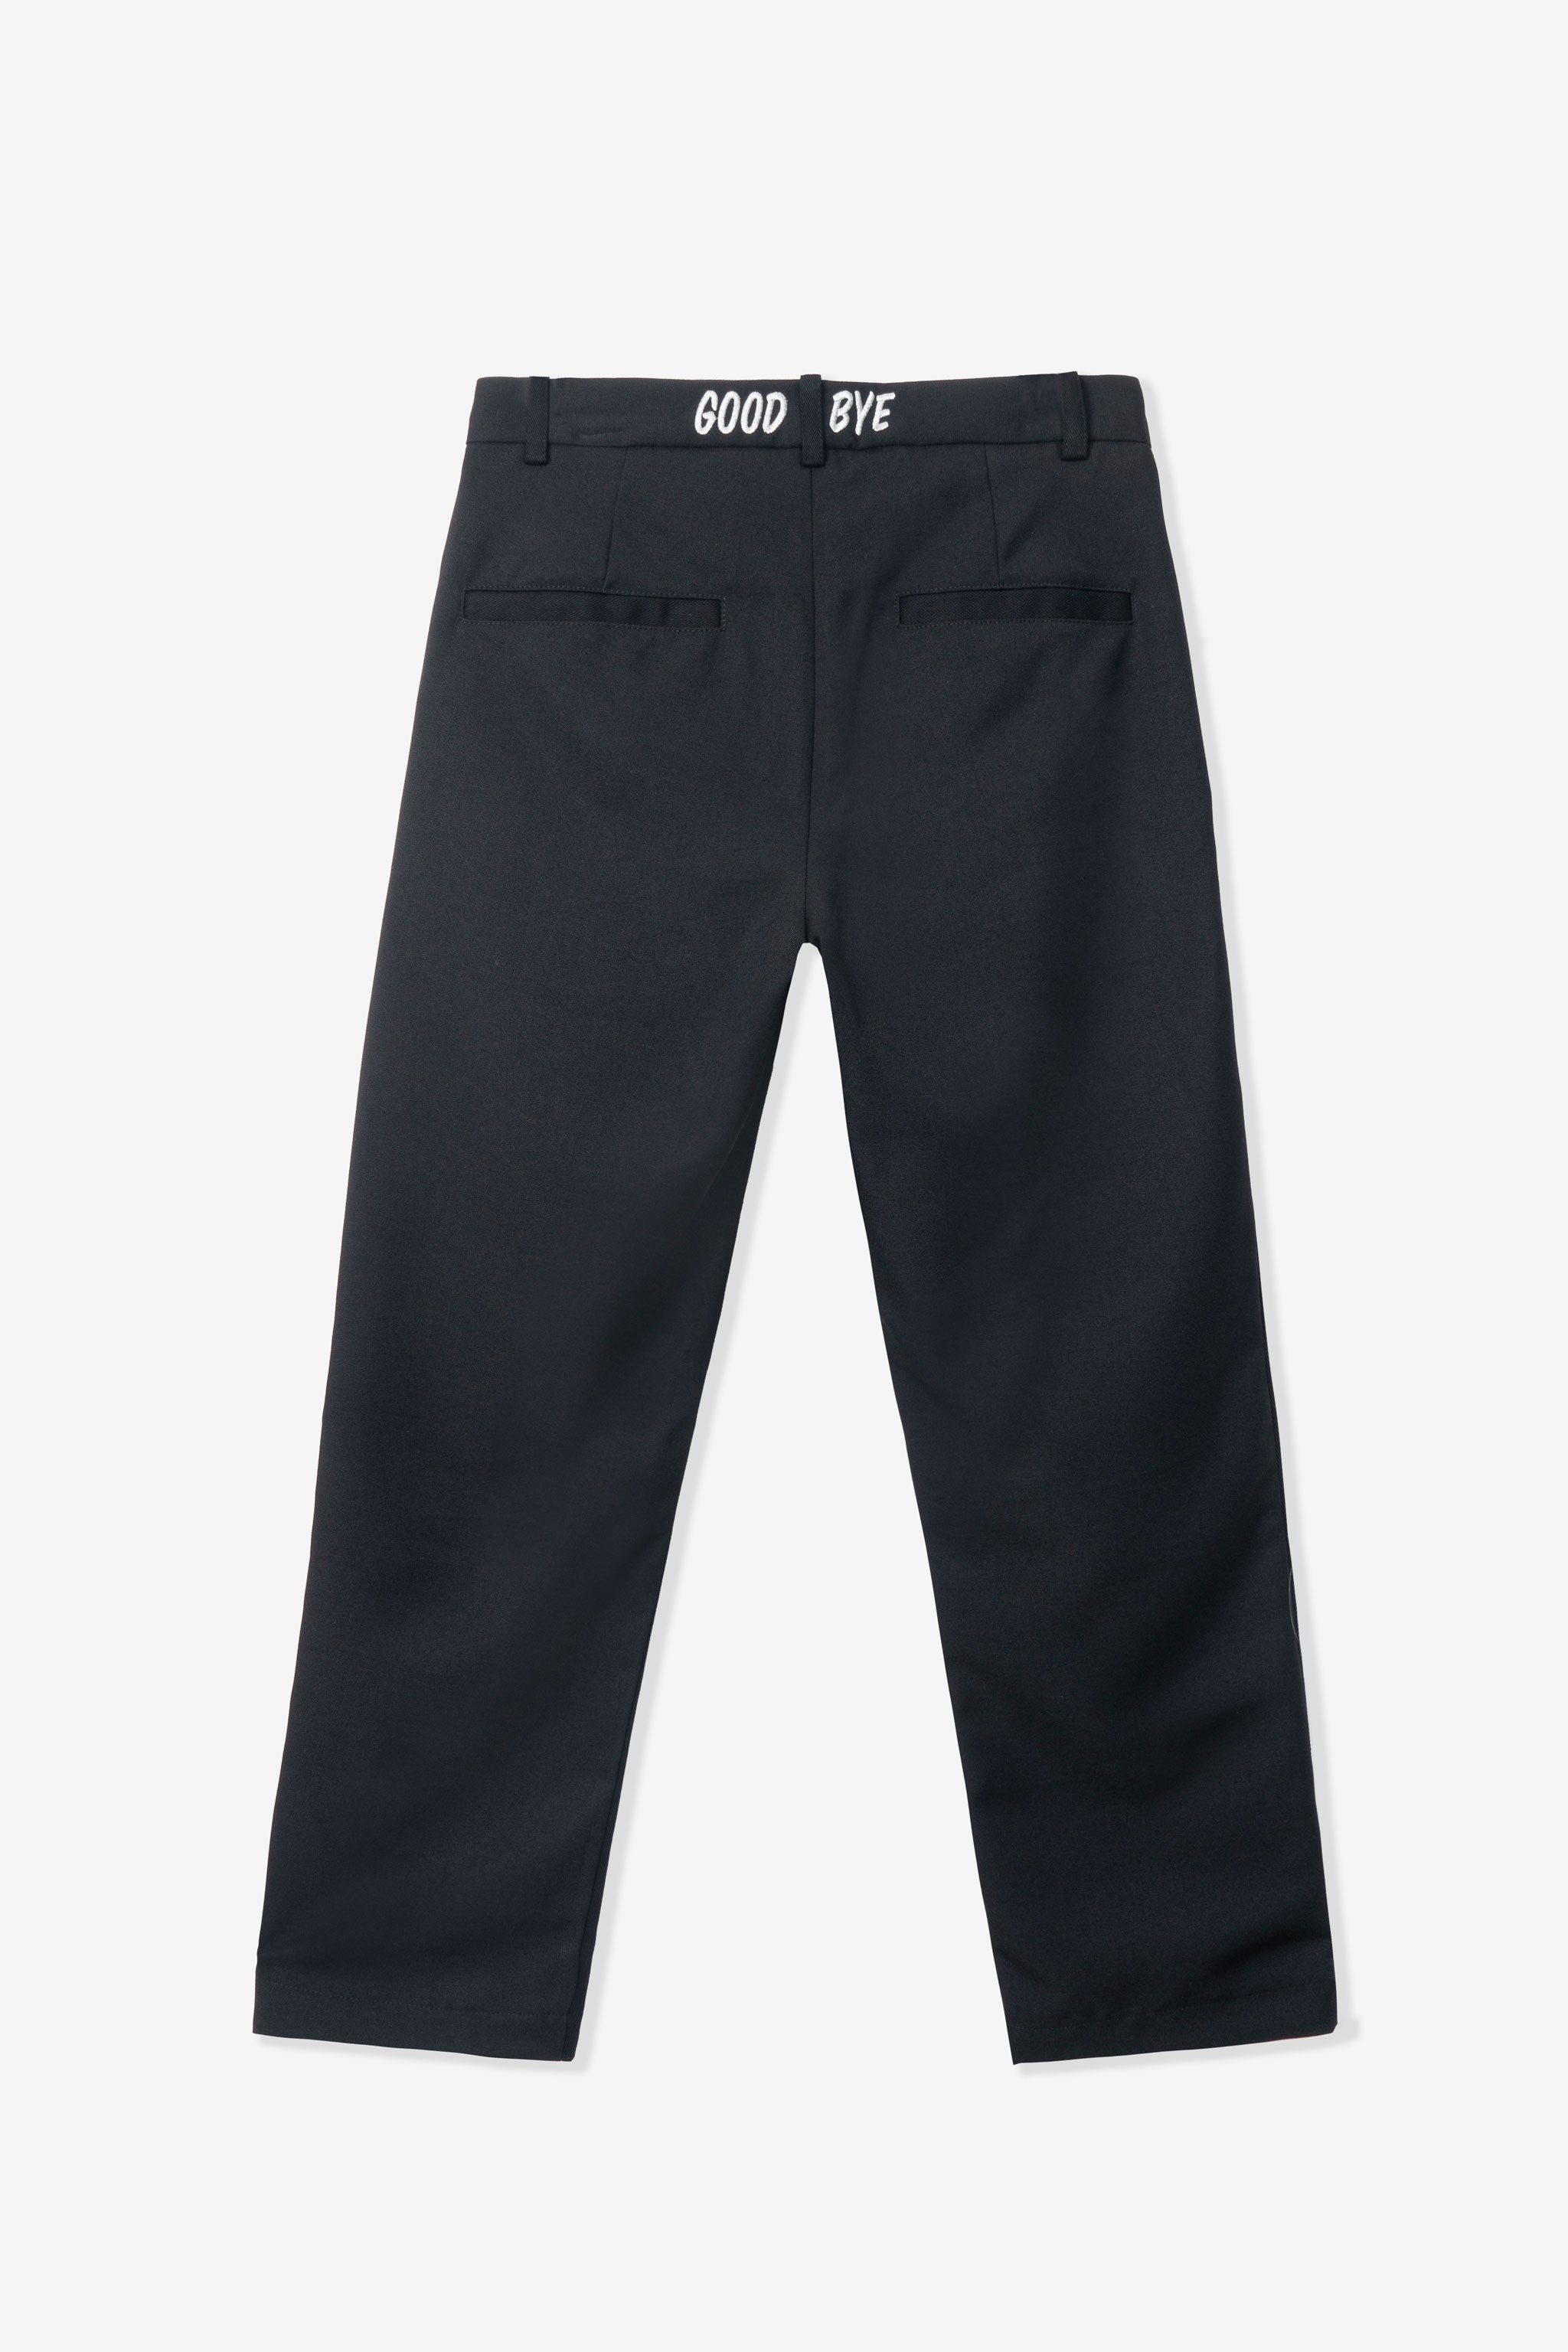 "Goodfight x DSMG ""Goodbye Racing"" Junction Trouser"